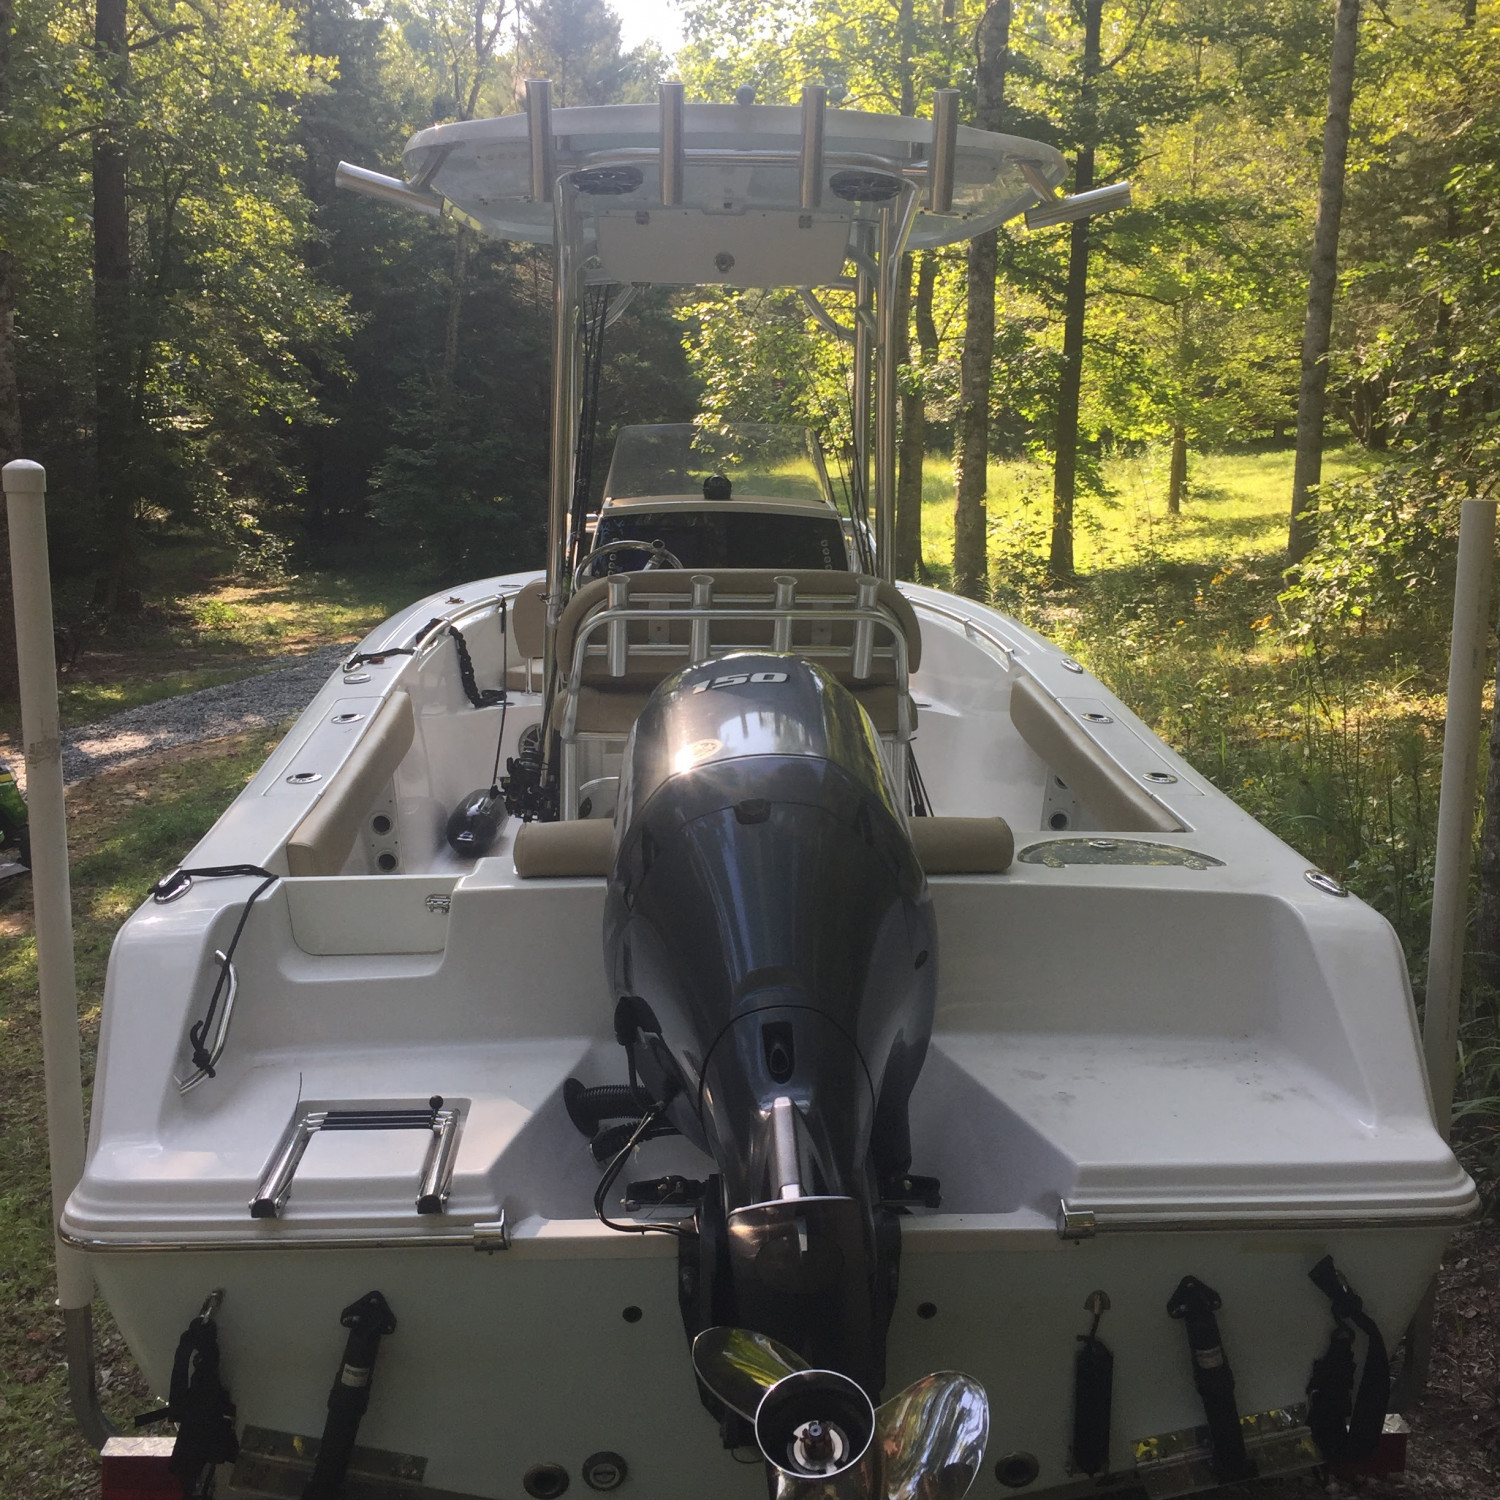 Title: TCB - On board their Sportsman Open 212 Center Console - Location: Cleveland, SC. Participating in the Photo Contest #SportsmanNovember2017